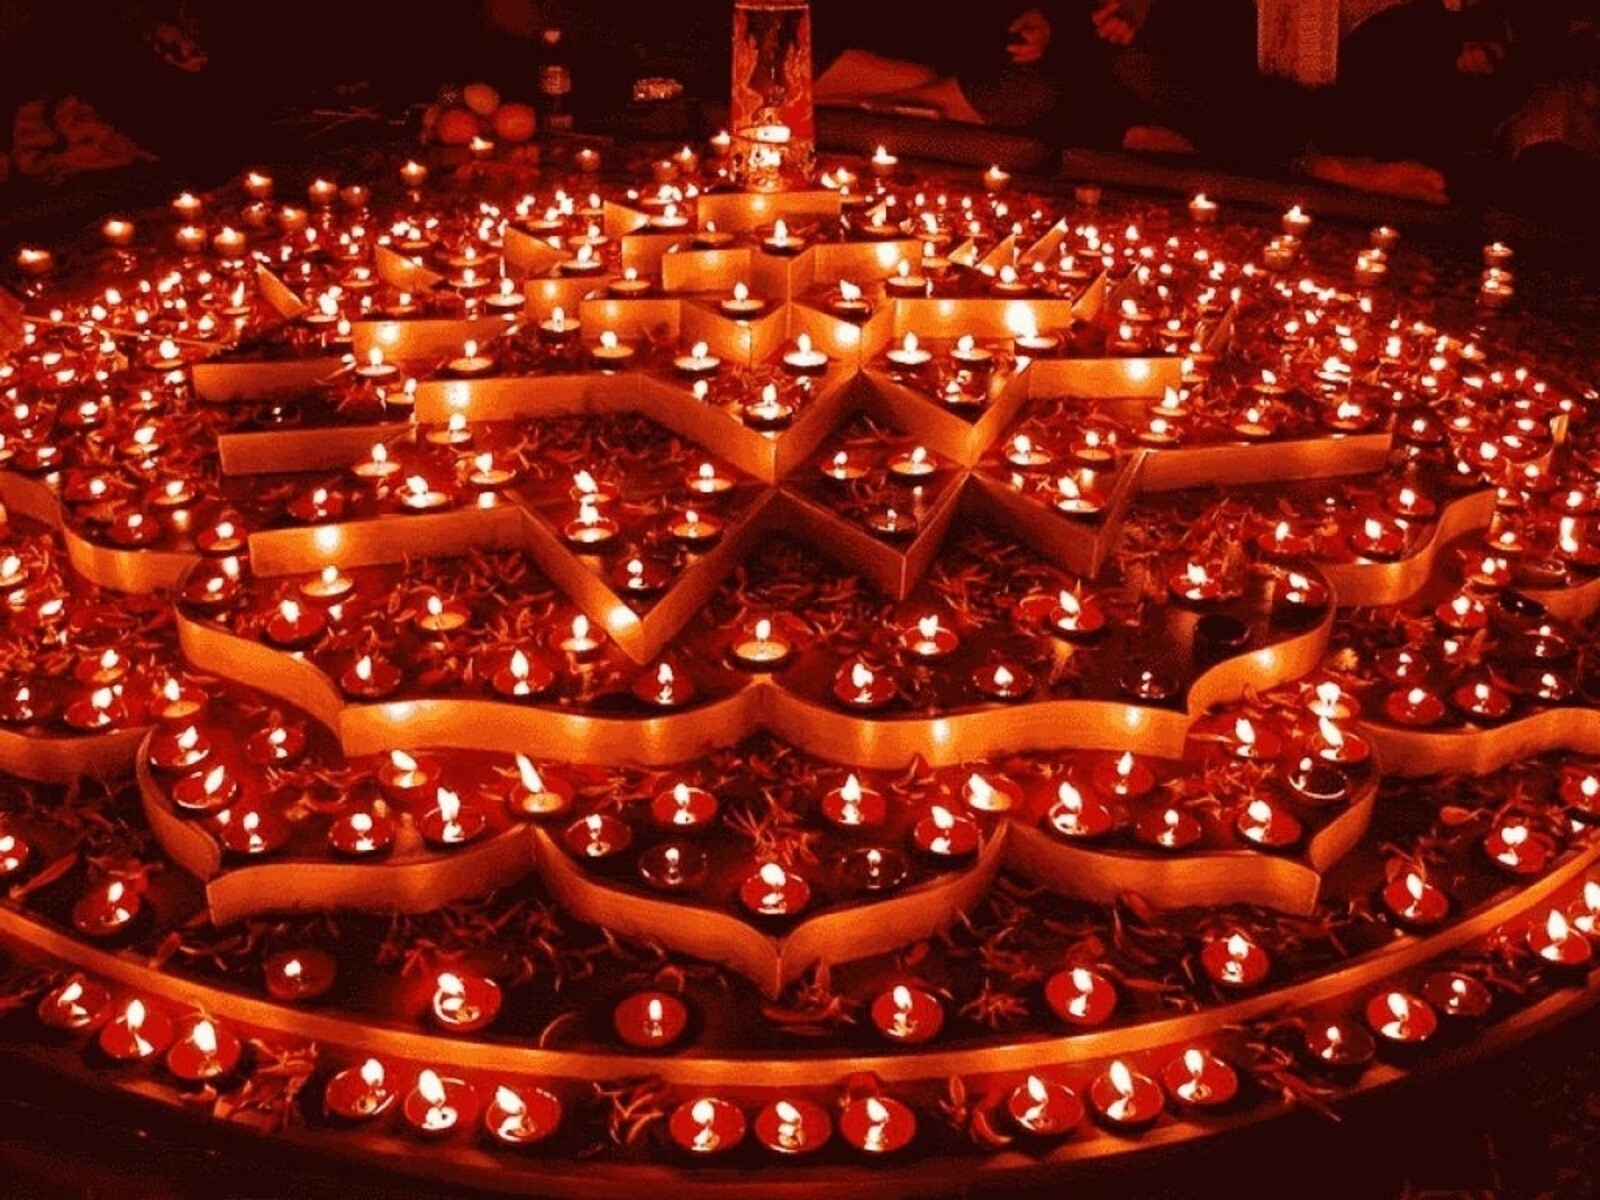 Indian Festival Decoration Indian Festival Diwali Large Collection Of Diya And Decoration